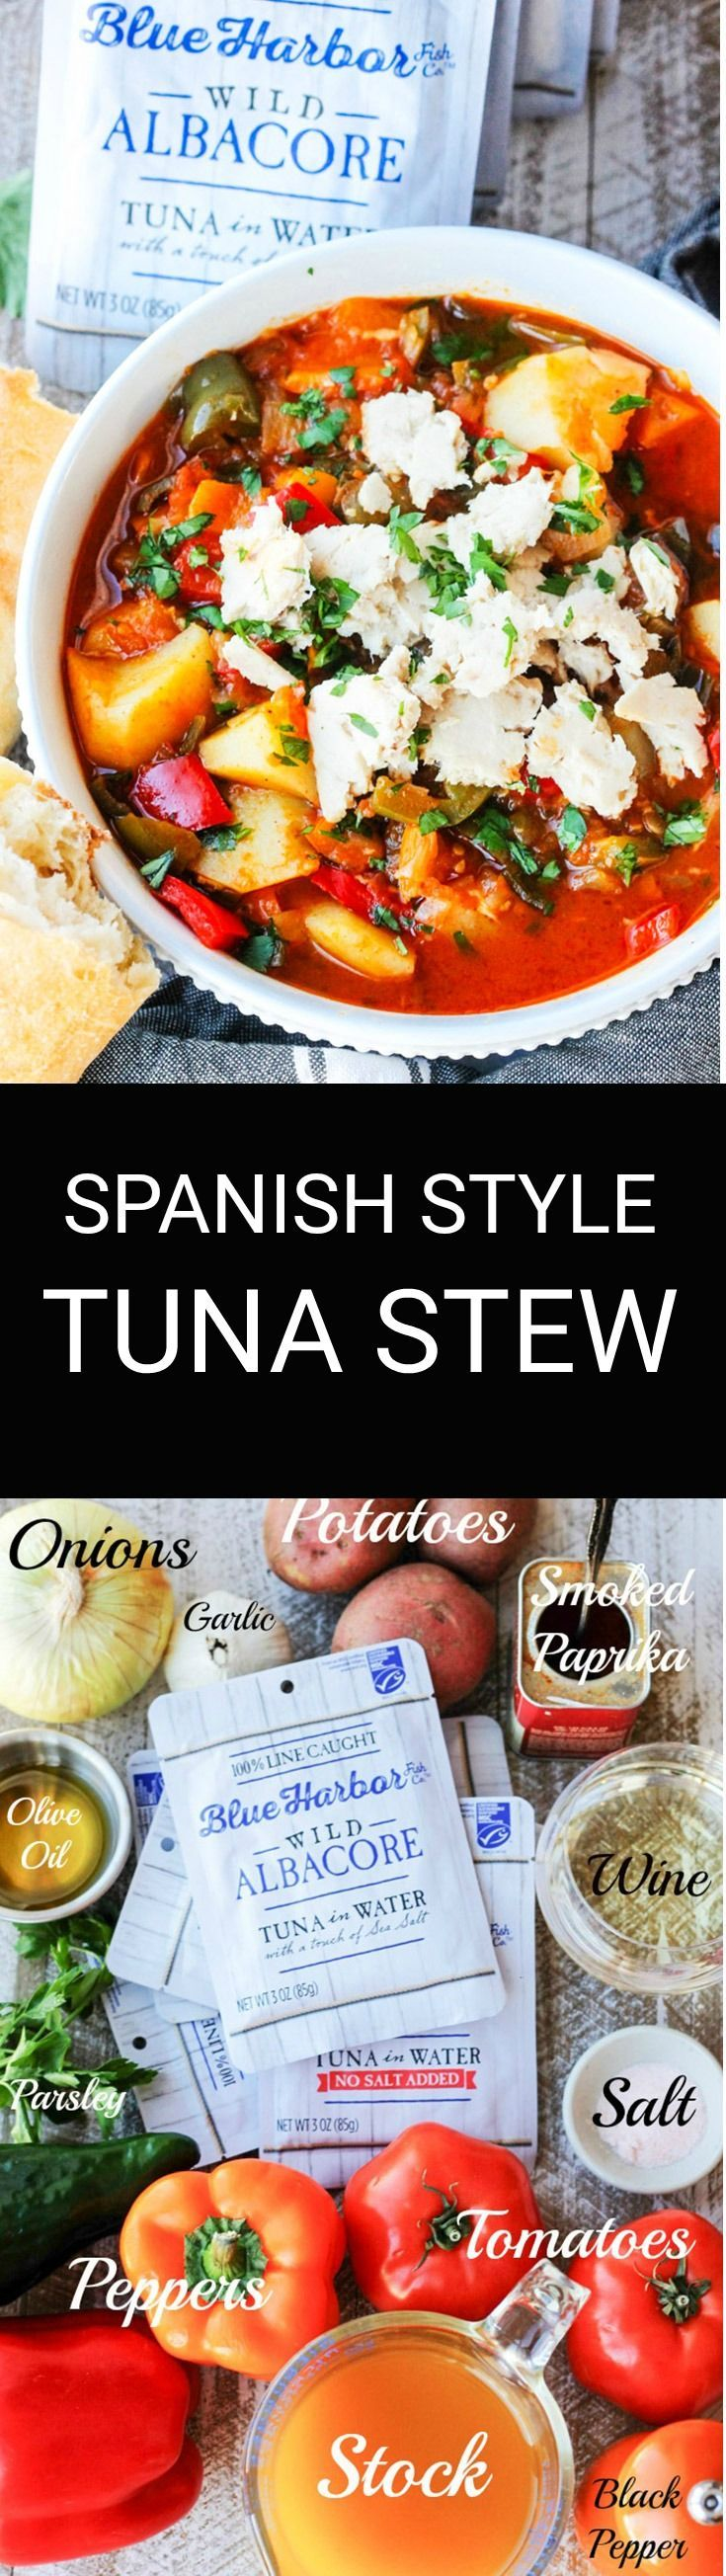 This Spanish Style Tuna Stew with Potatoes, Peppers and Tomatoes is a healthy, clean-eating type of meal that comes together in no time, and it's perfect to option during Lent. The main ingredient in this recipe is sustainably caught, premium quality Blue Harbor Albacore Tuna in Water with a touch of sea salt. AD